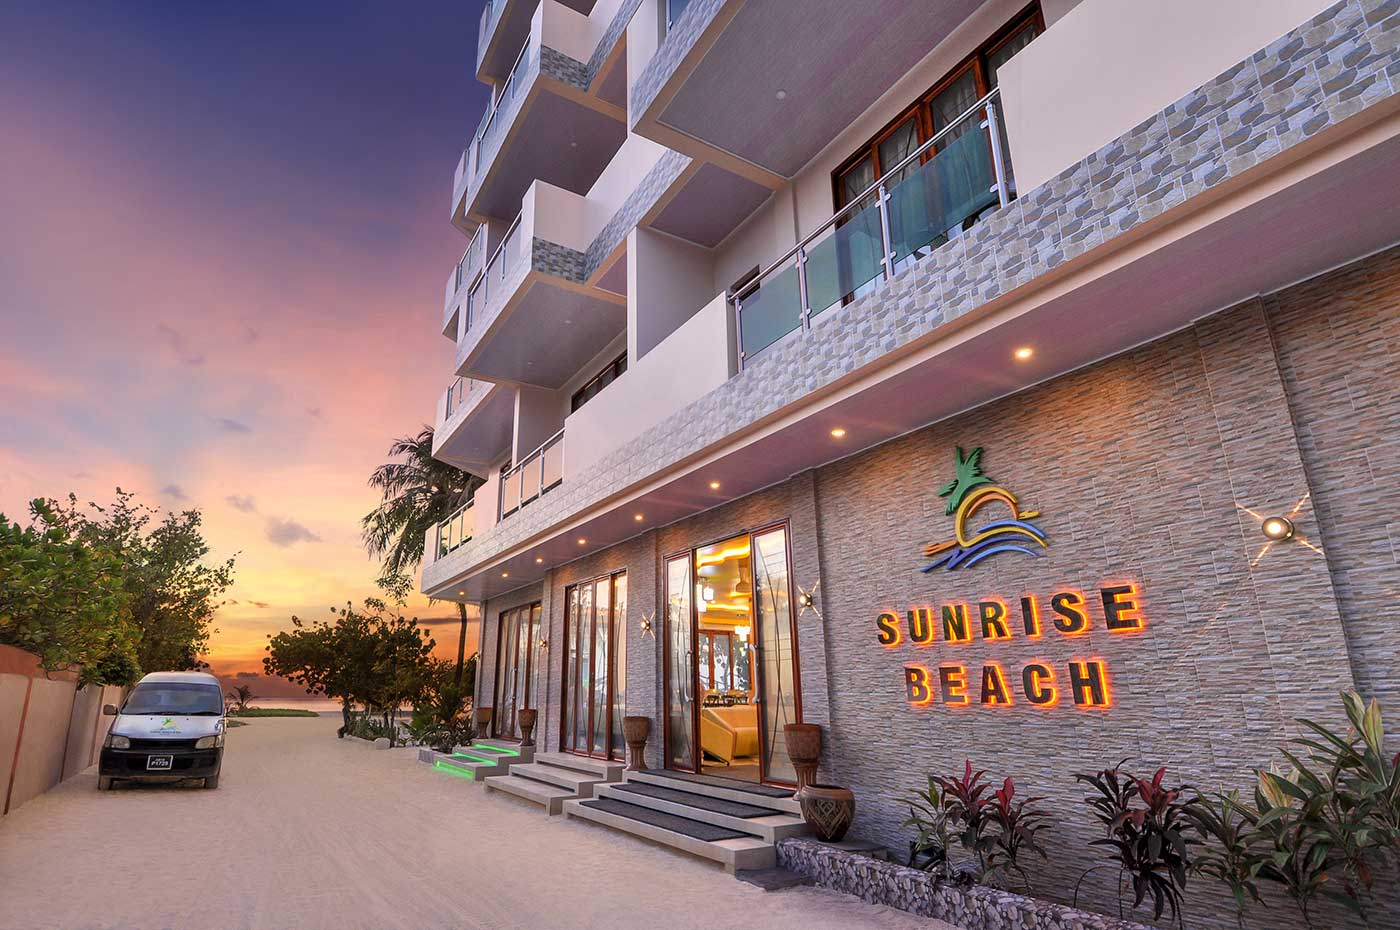 sunrise beach hotel Maafushi 玩轉馬爾地夫17